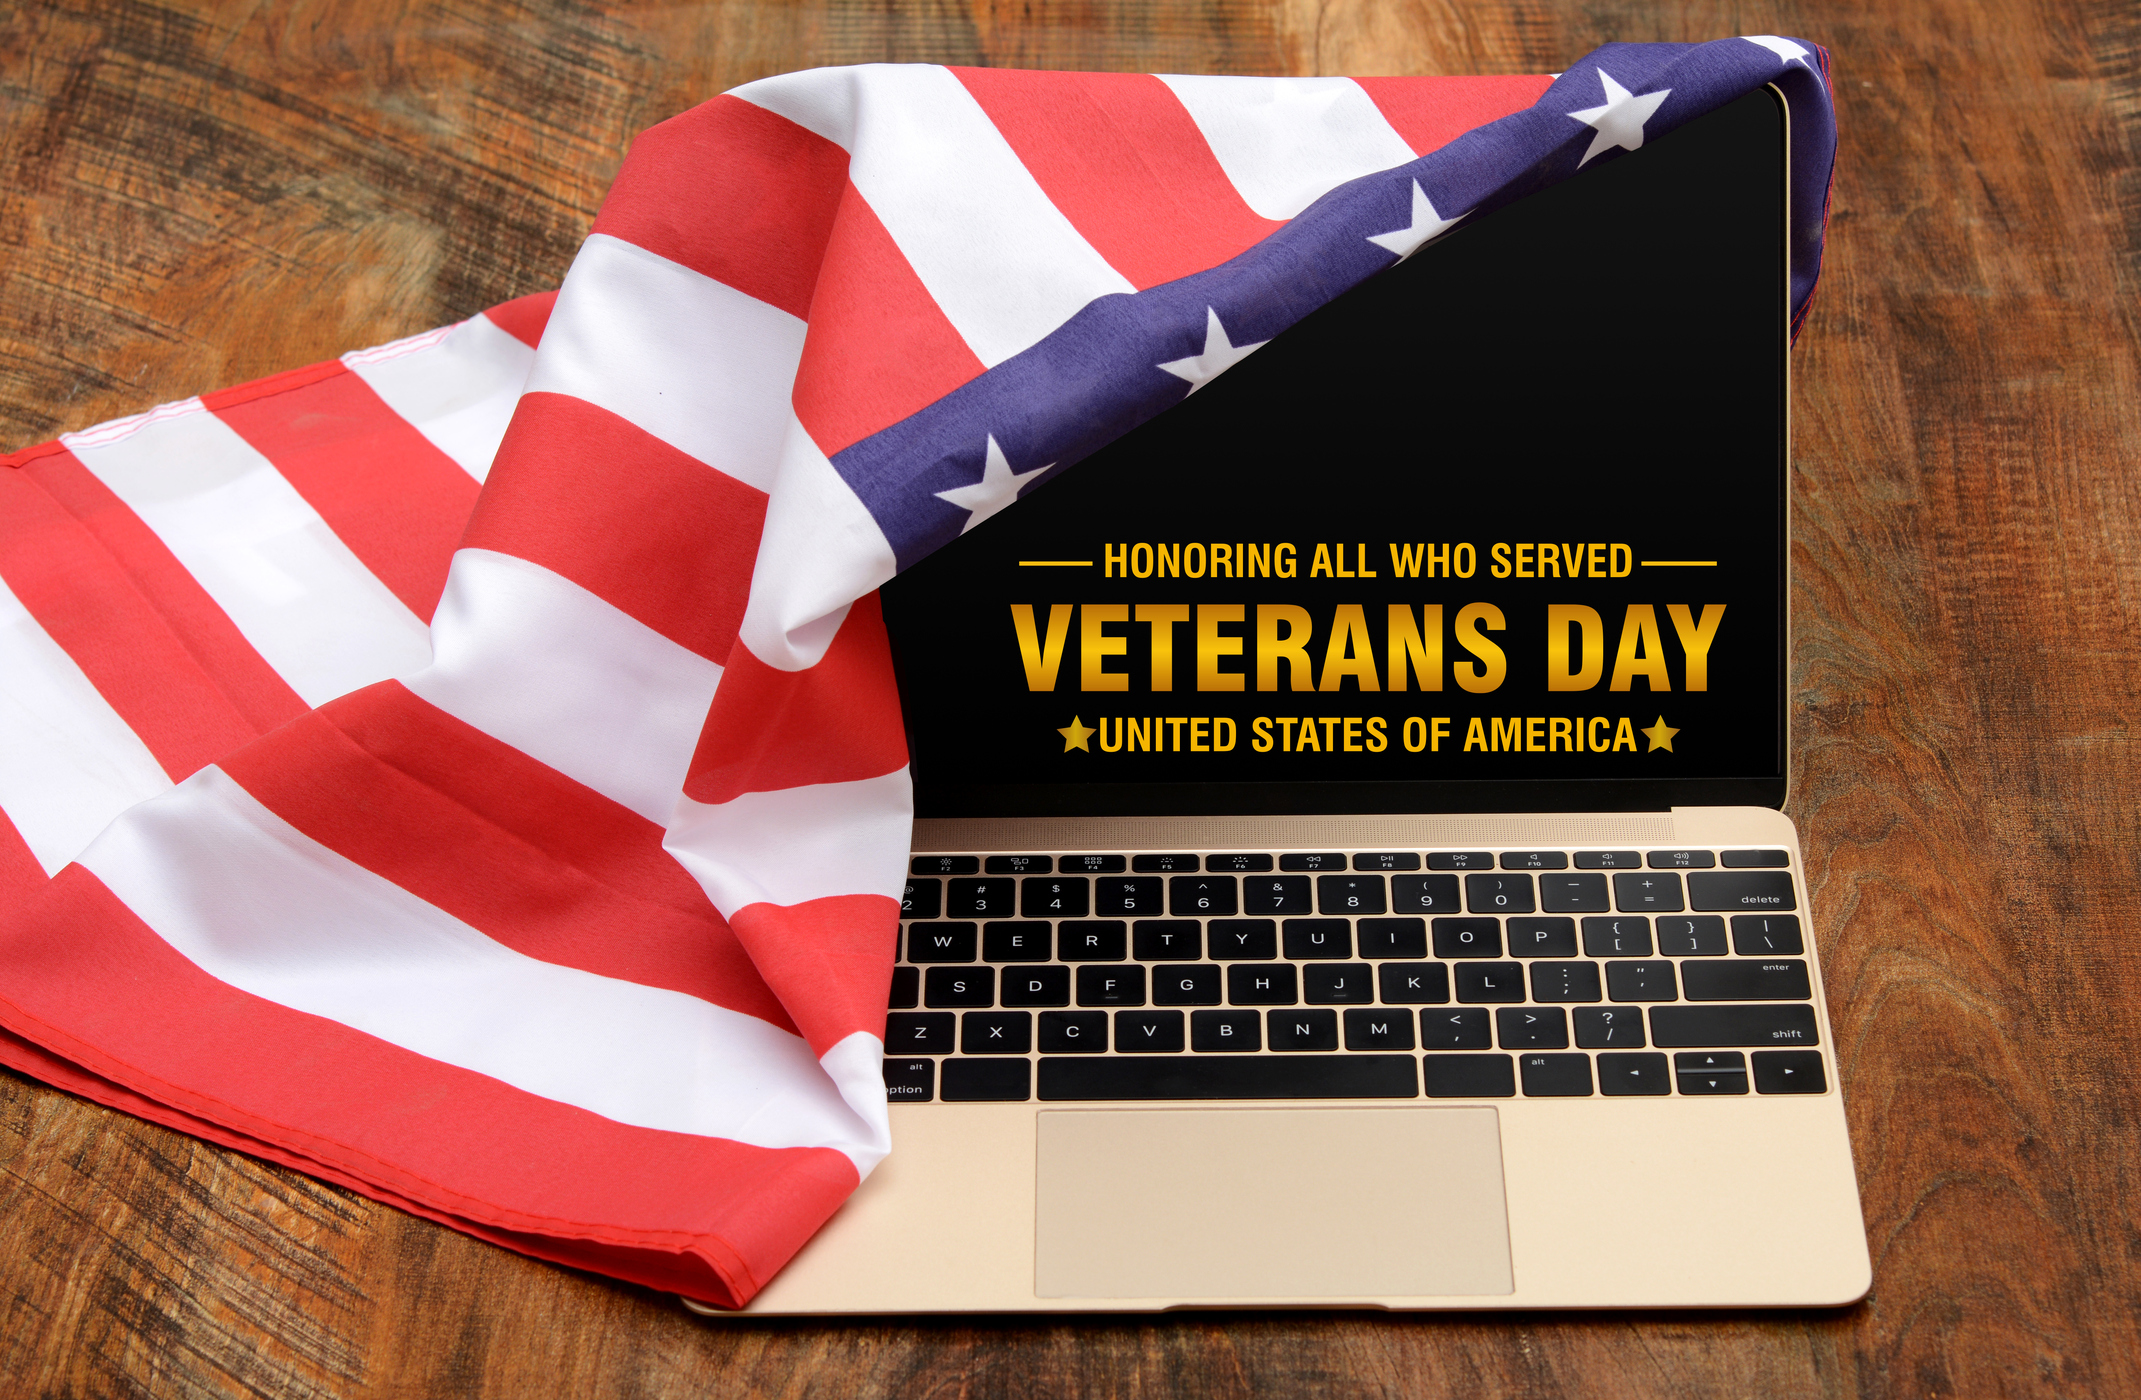 Veterans Day job leads